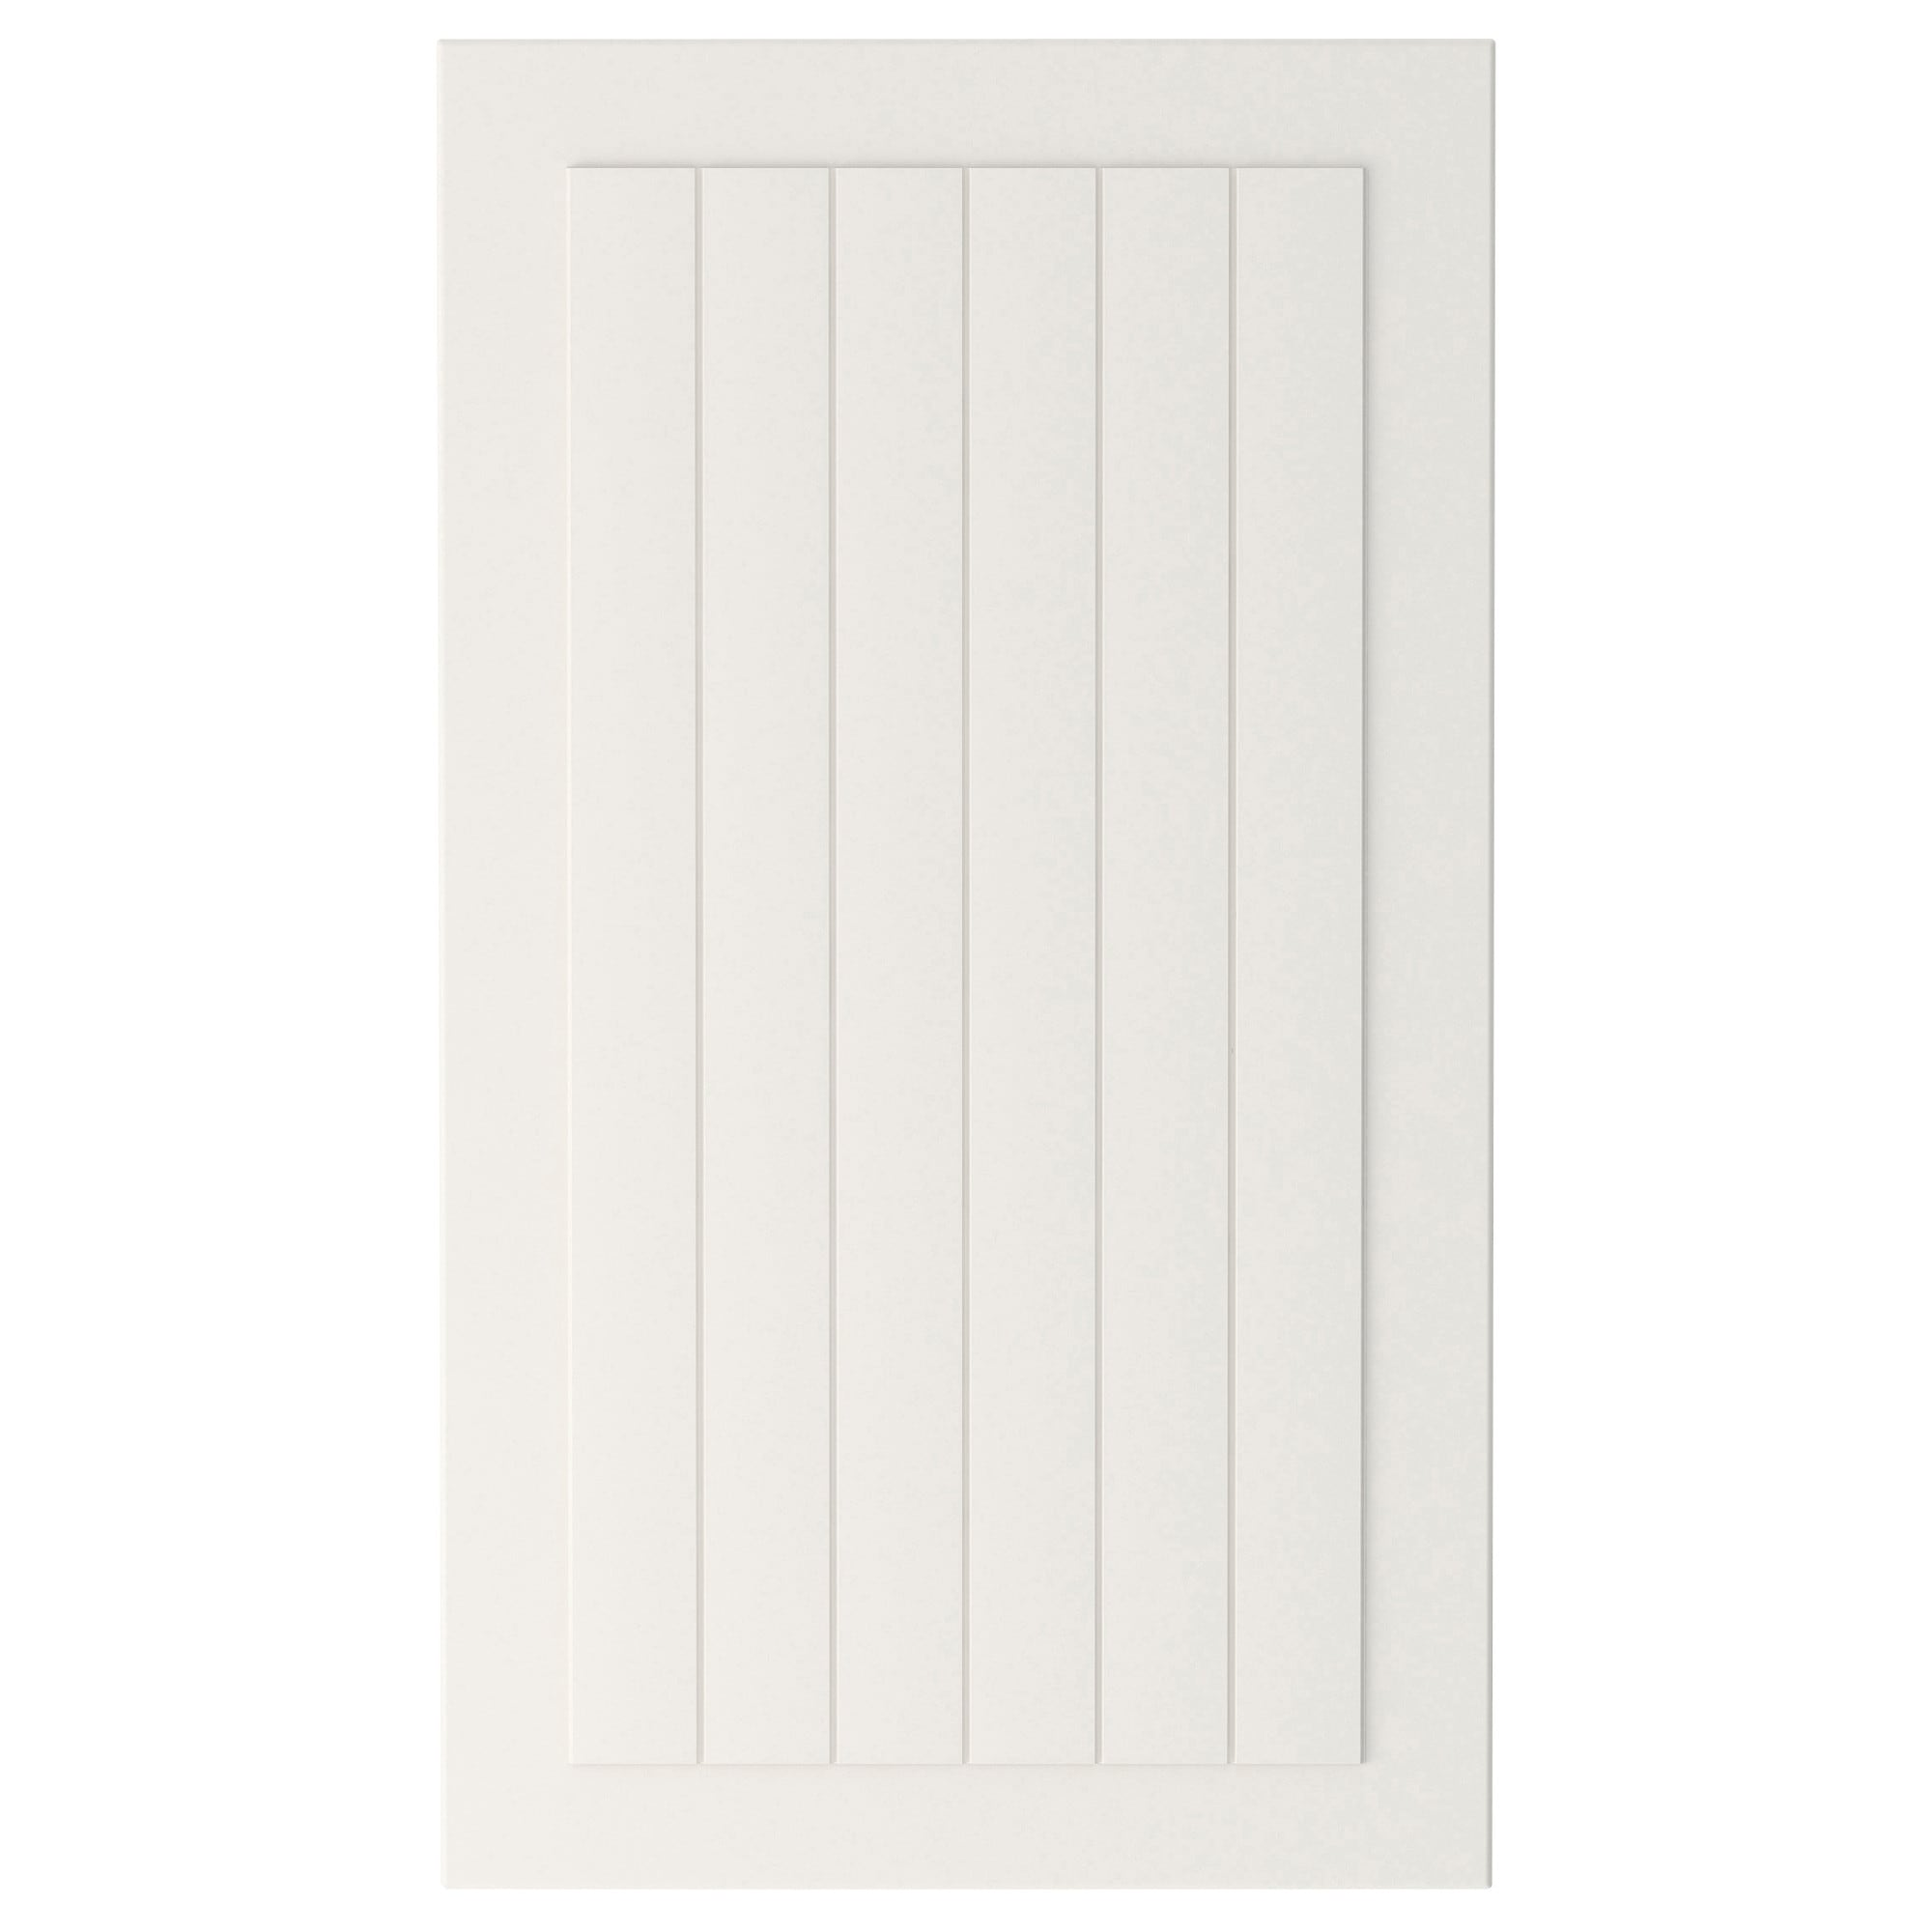 White Kitchen Cabinets Doors White Kitchen Cabinets With Doors 14513020170530 Ponyiexnet